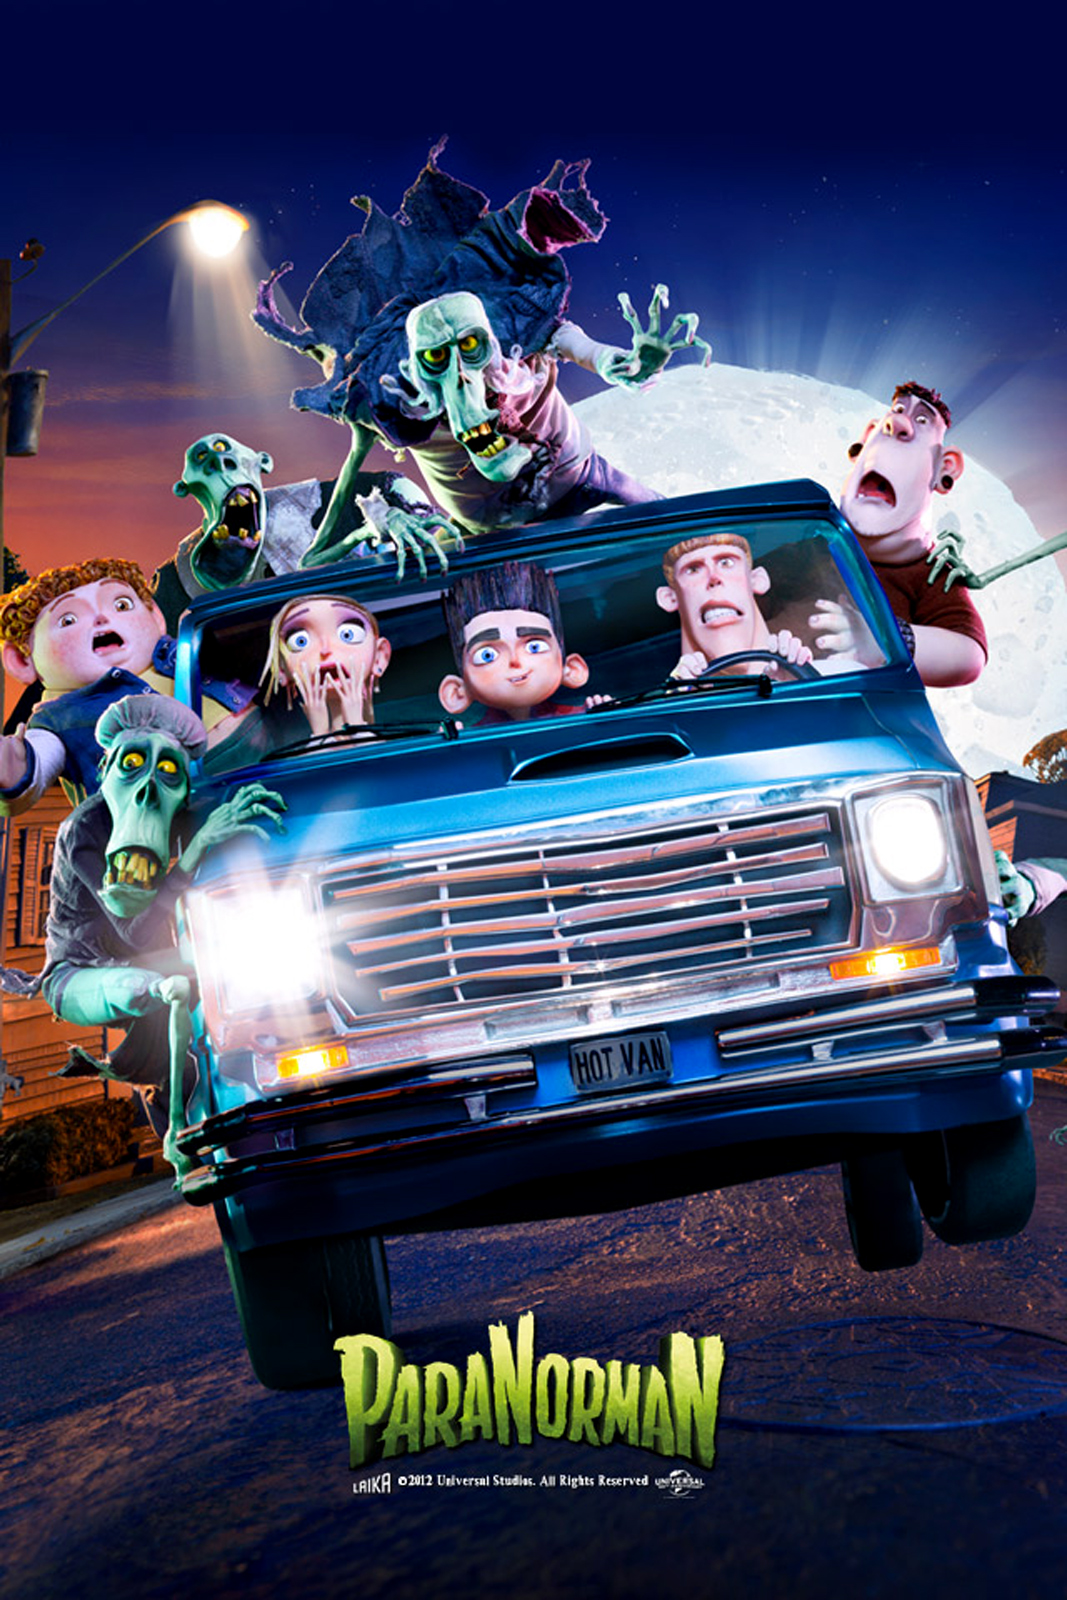 Paranorman Animation Movie Hd Wallpapers Desktop Wallpaper